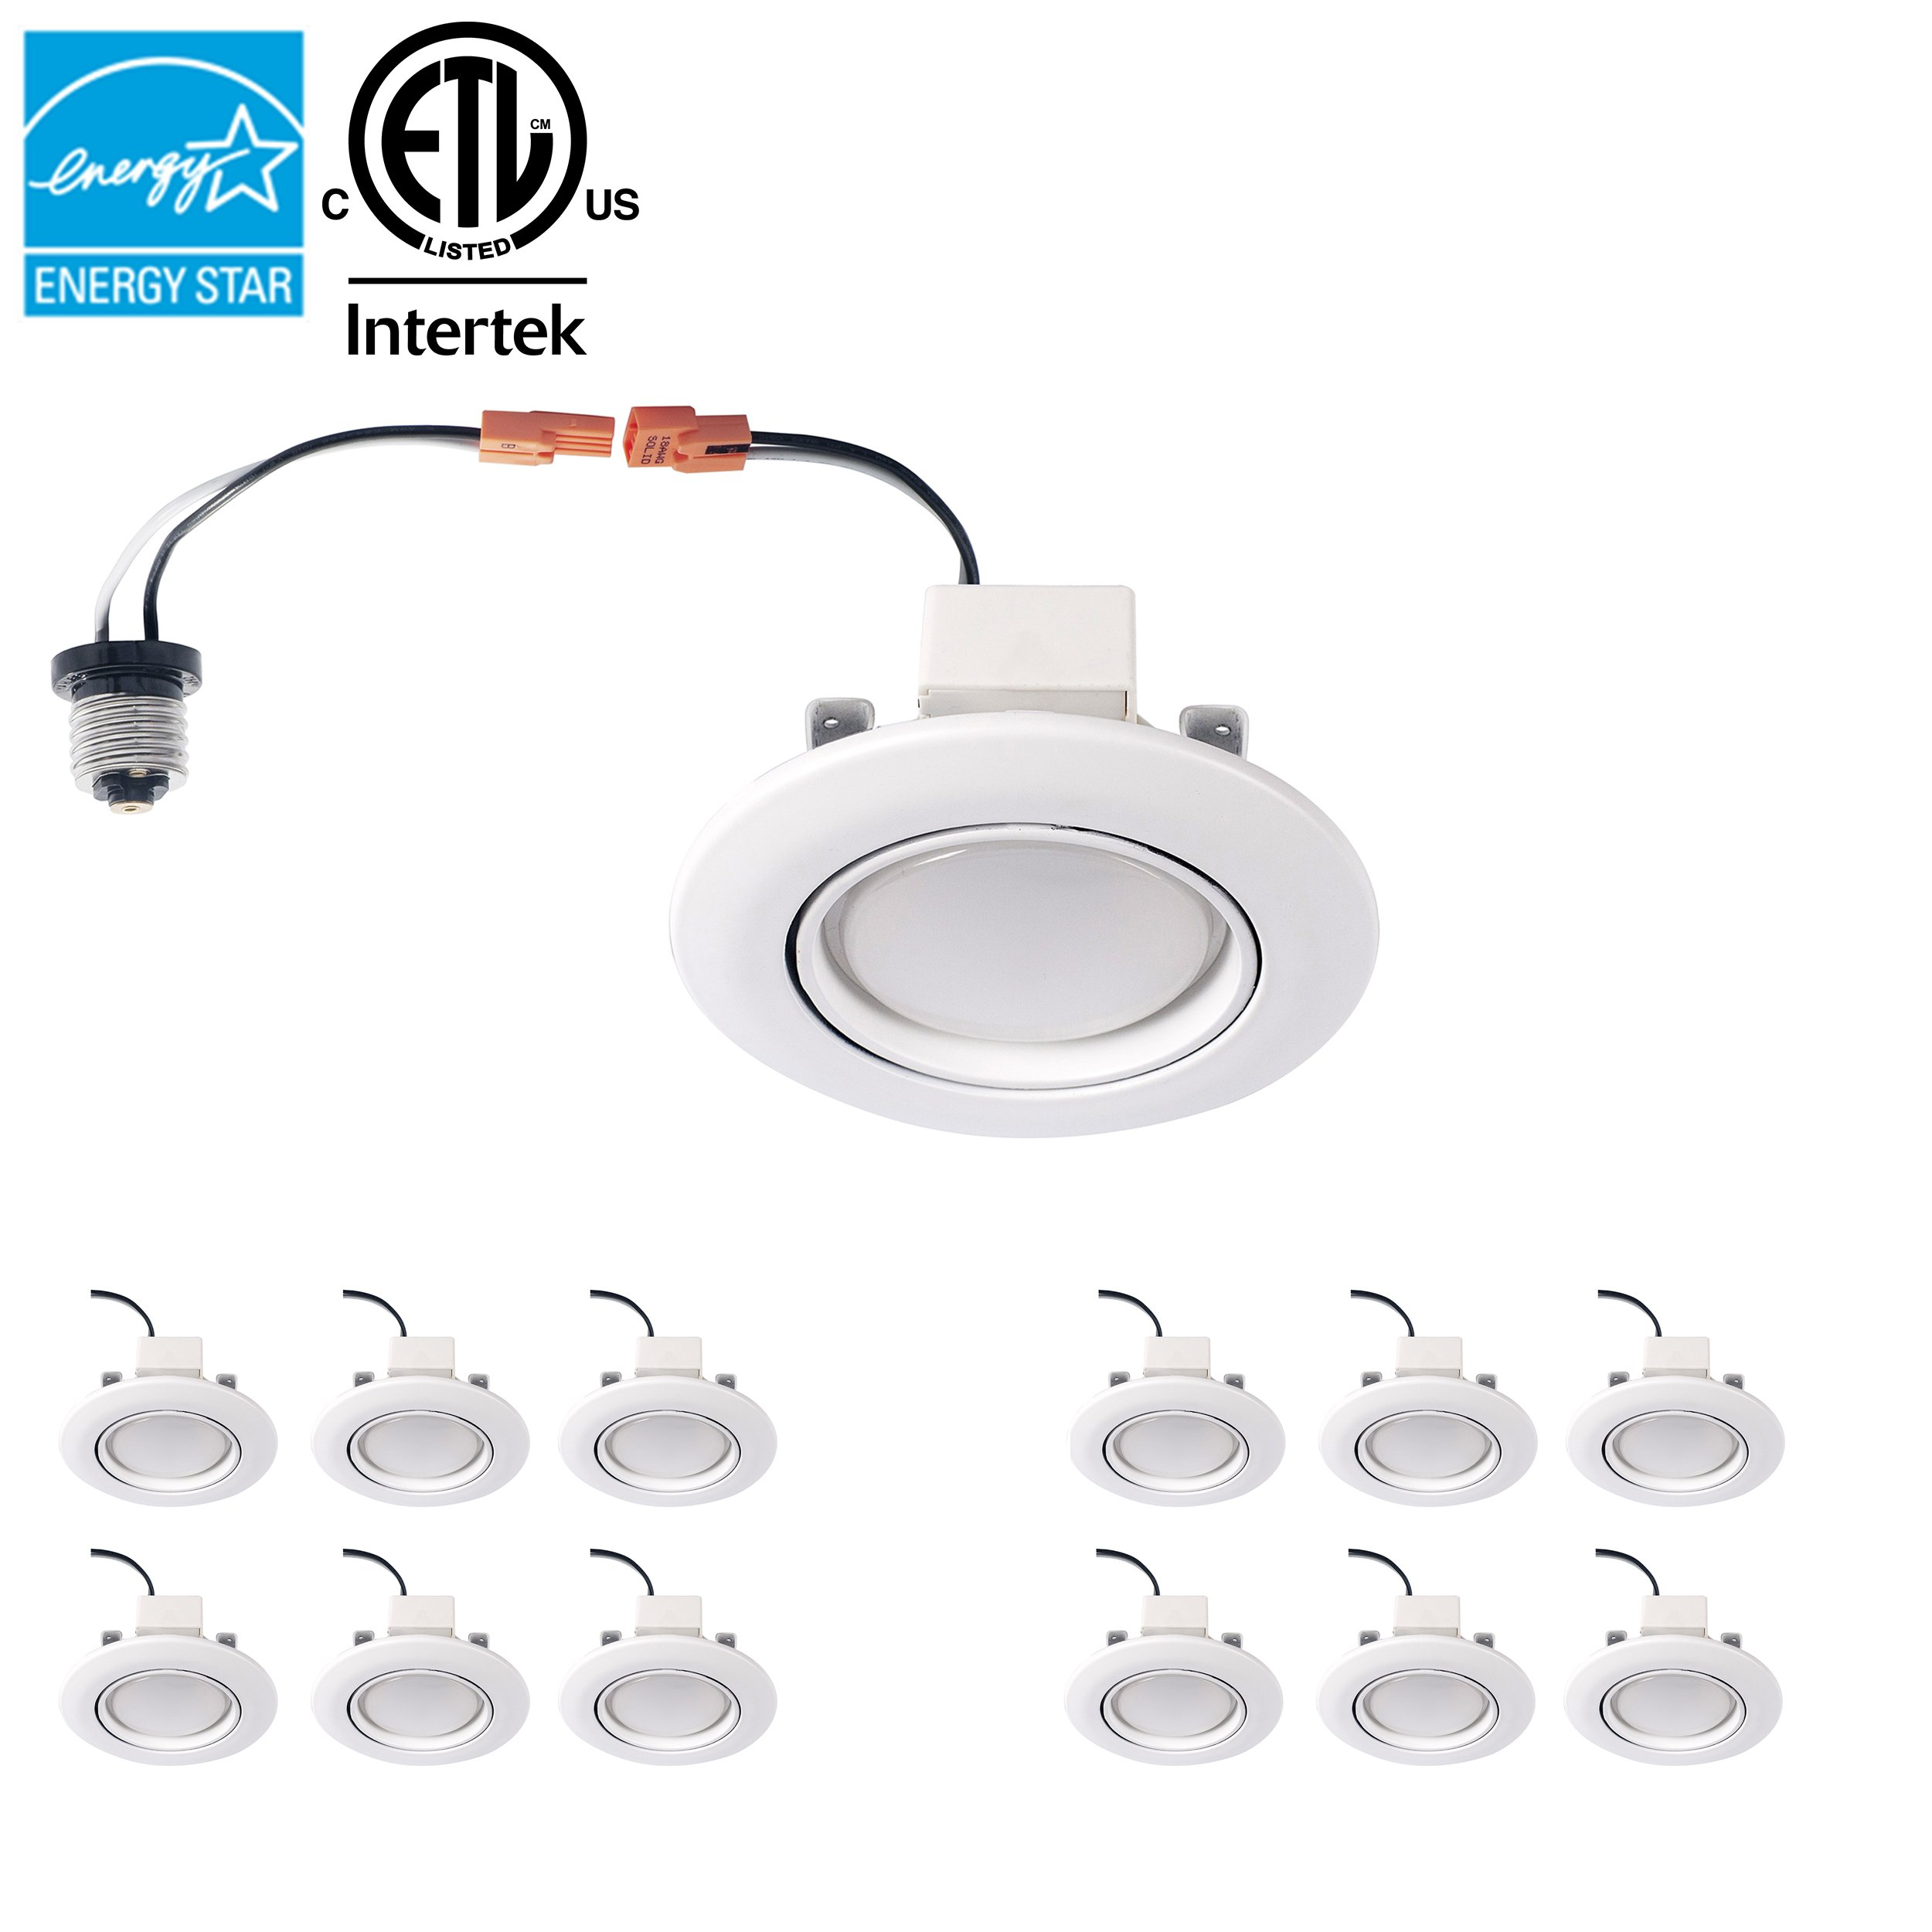 Parmida (12 Pack) 4 inch Dimmable LED Adjustable Gimbal Eyeball Retrofit Recessed Downlight, 10W (65W Replacement), Directional Swivel Can Lighting Trim, 650lm, ENERGY STAR & ETL, 3000K (Soft White)